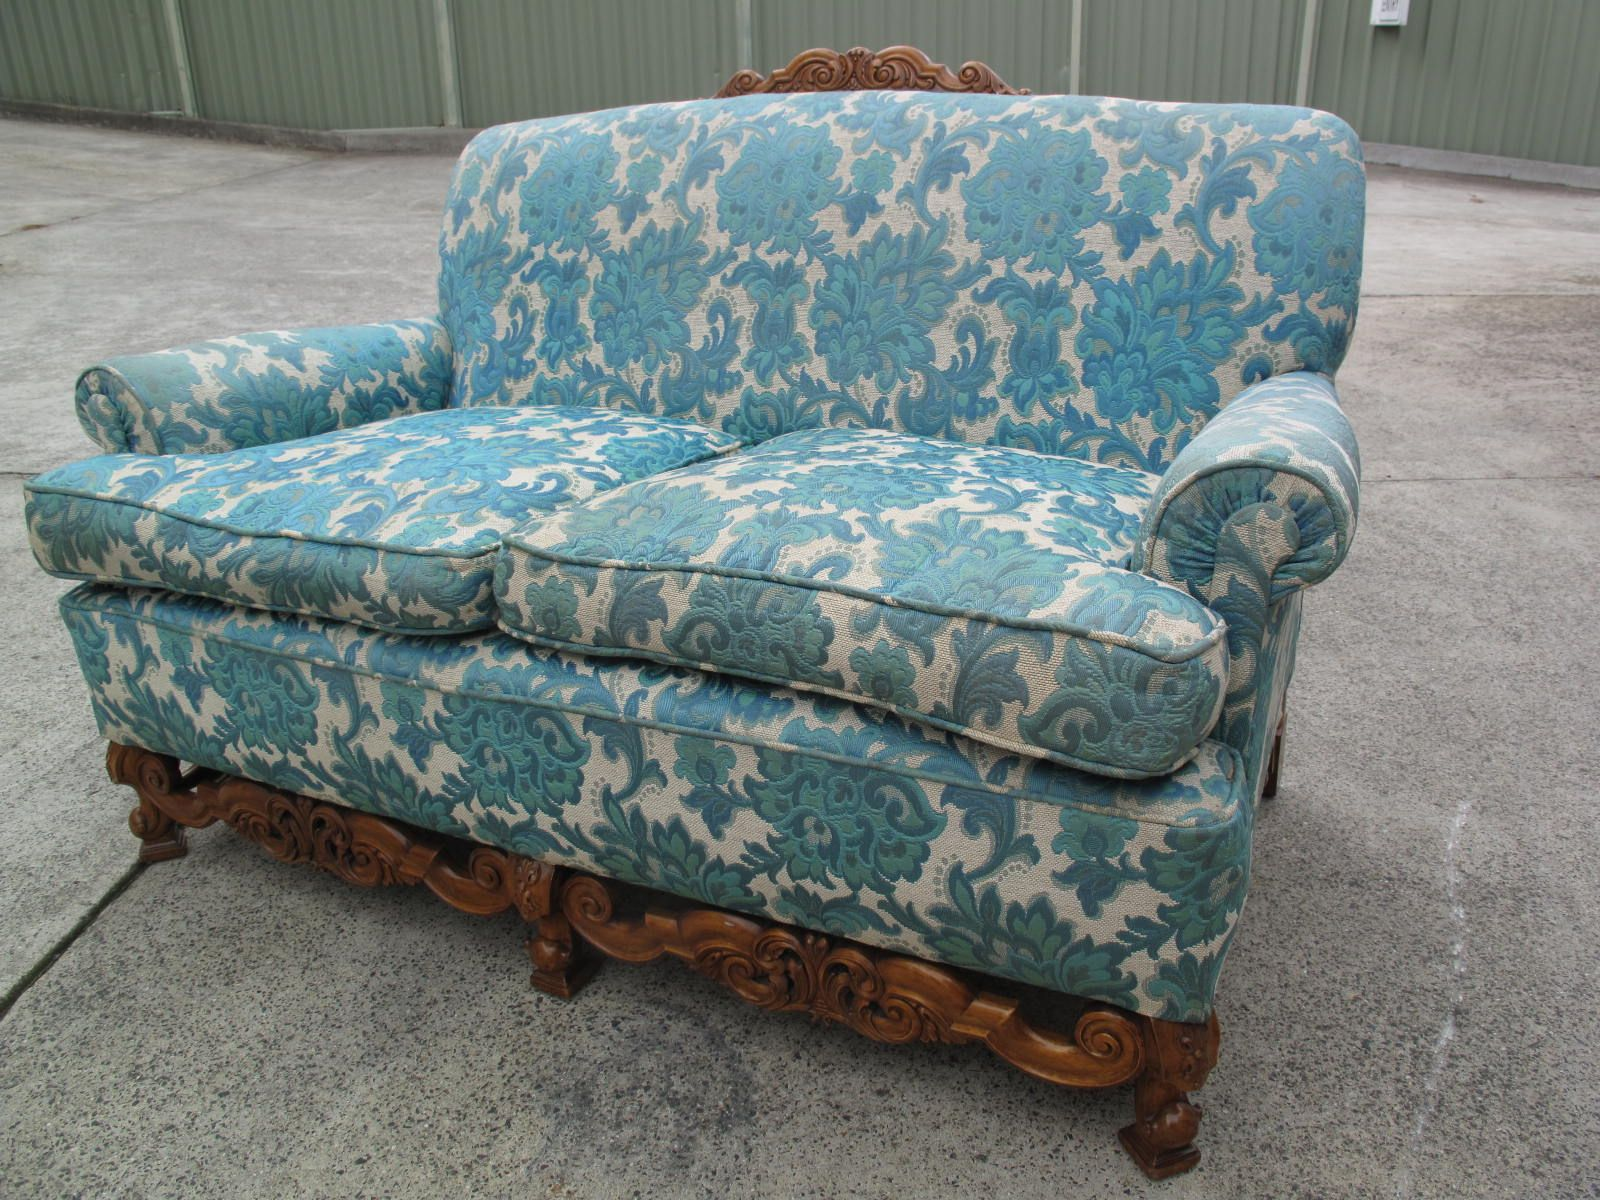 2ndhandshop french style vintage sofa 2 seater cafe blue brocade sofa pimp my nest. Black Bedroom Furniture Sets. Home Design Ideas